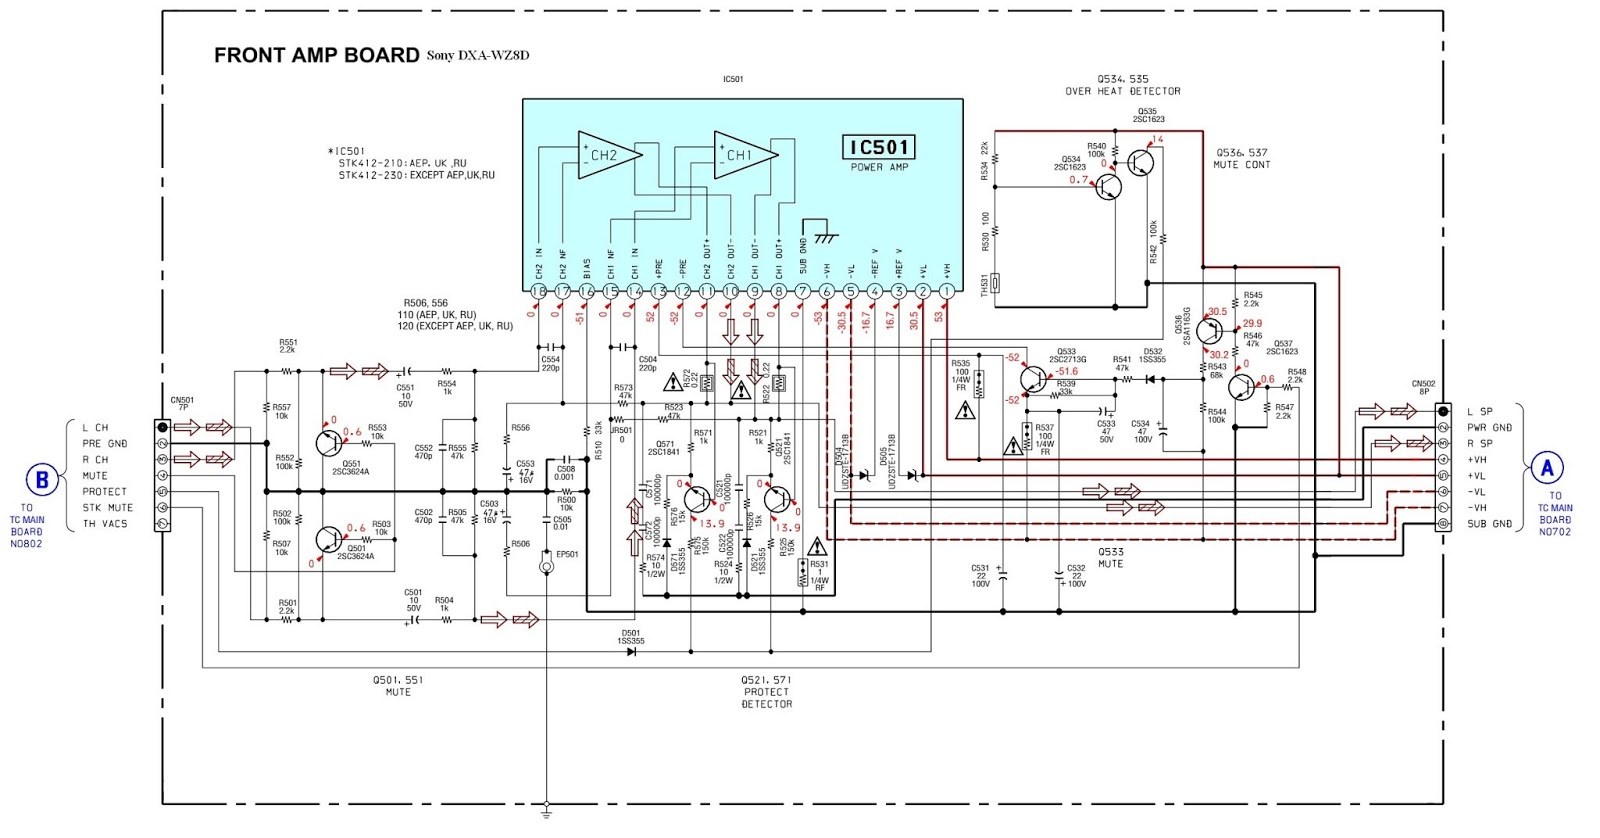 hight resolution of sony dxa wz8d front amplifier board circuit diagram